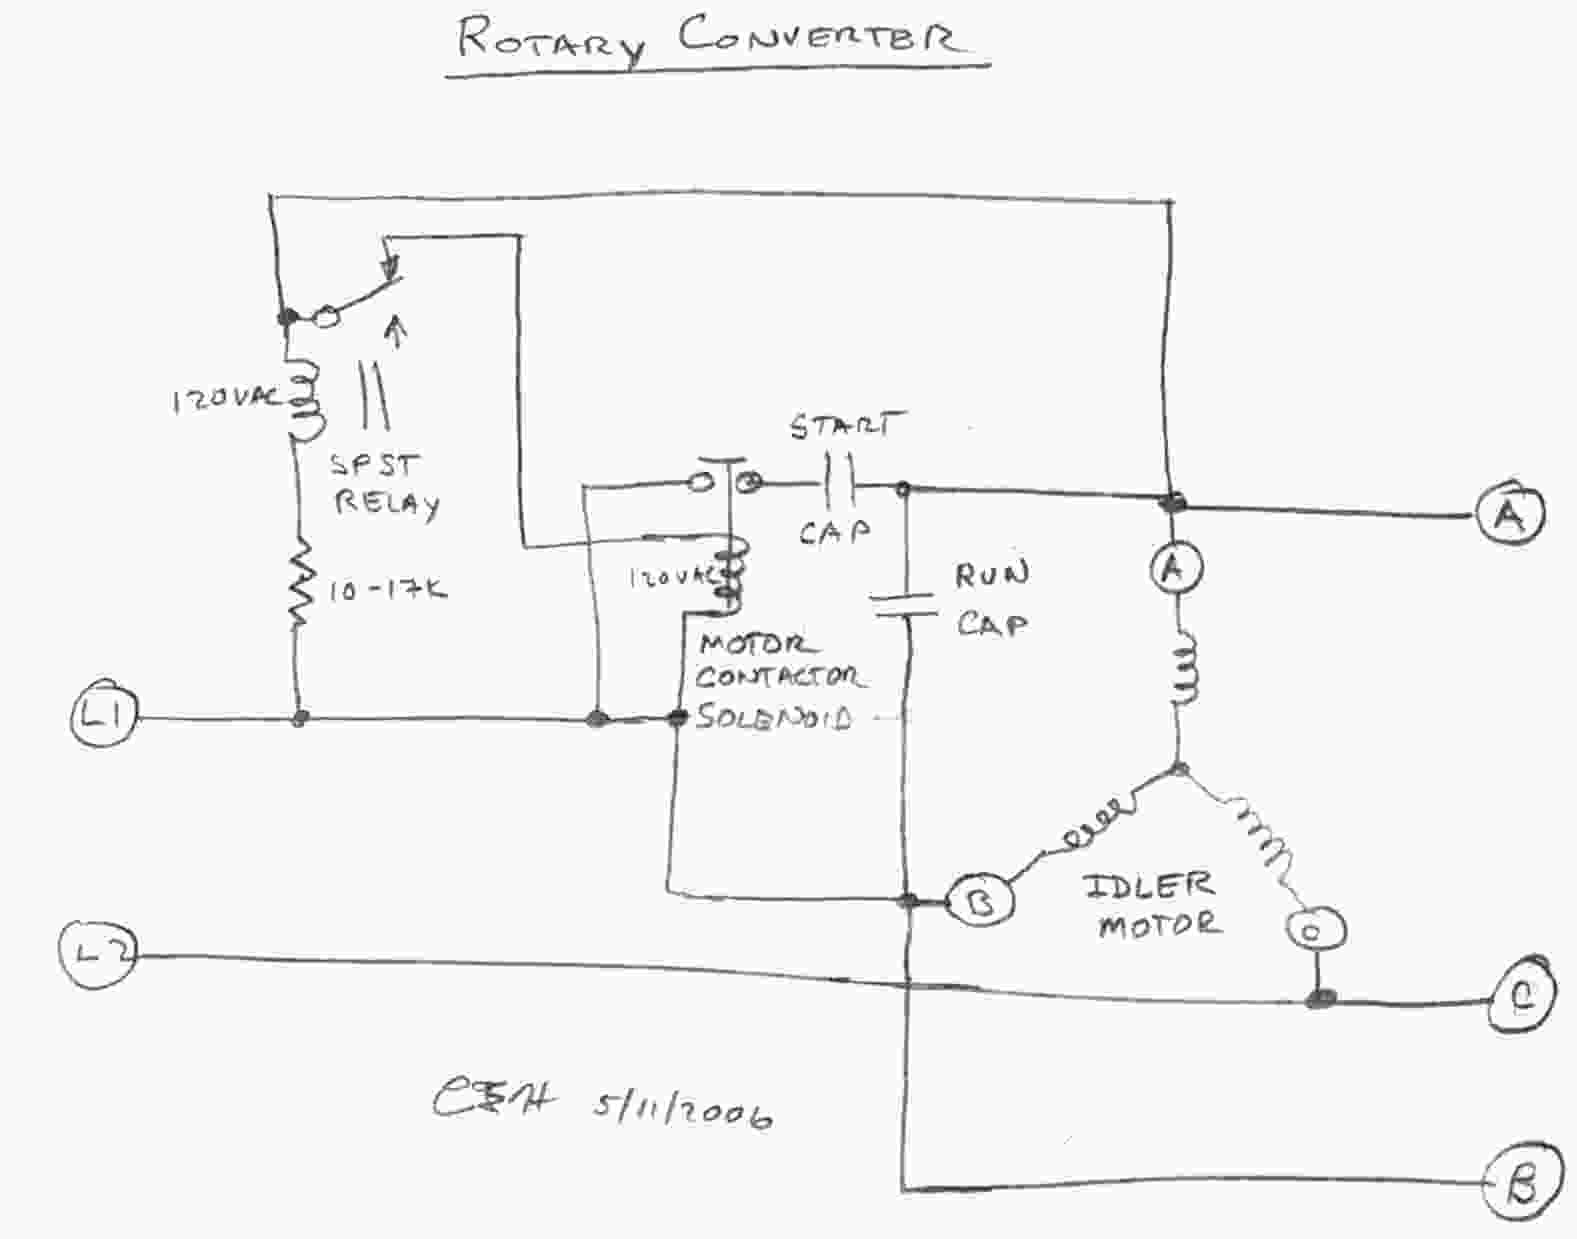 Capacitor Start Run Motor Wiring Diagram Fan Connection As It Is A Full Size Of Single Phase With Converters Rotary Converter Schematic Archived